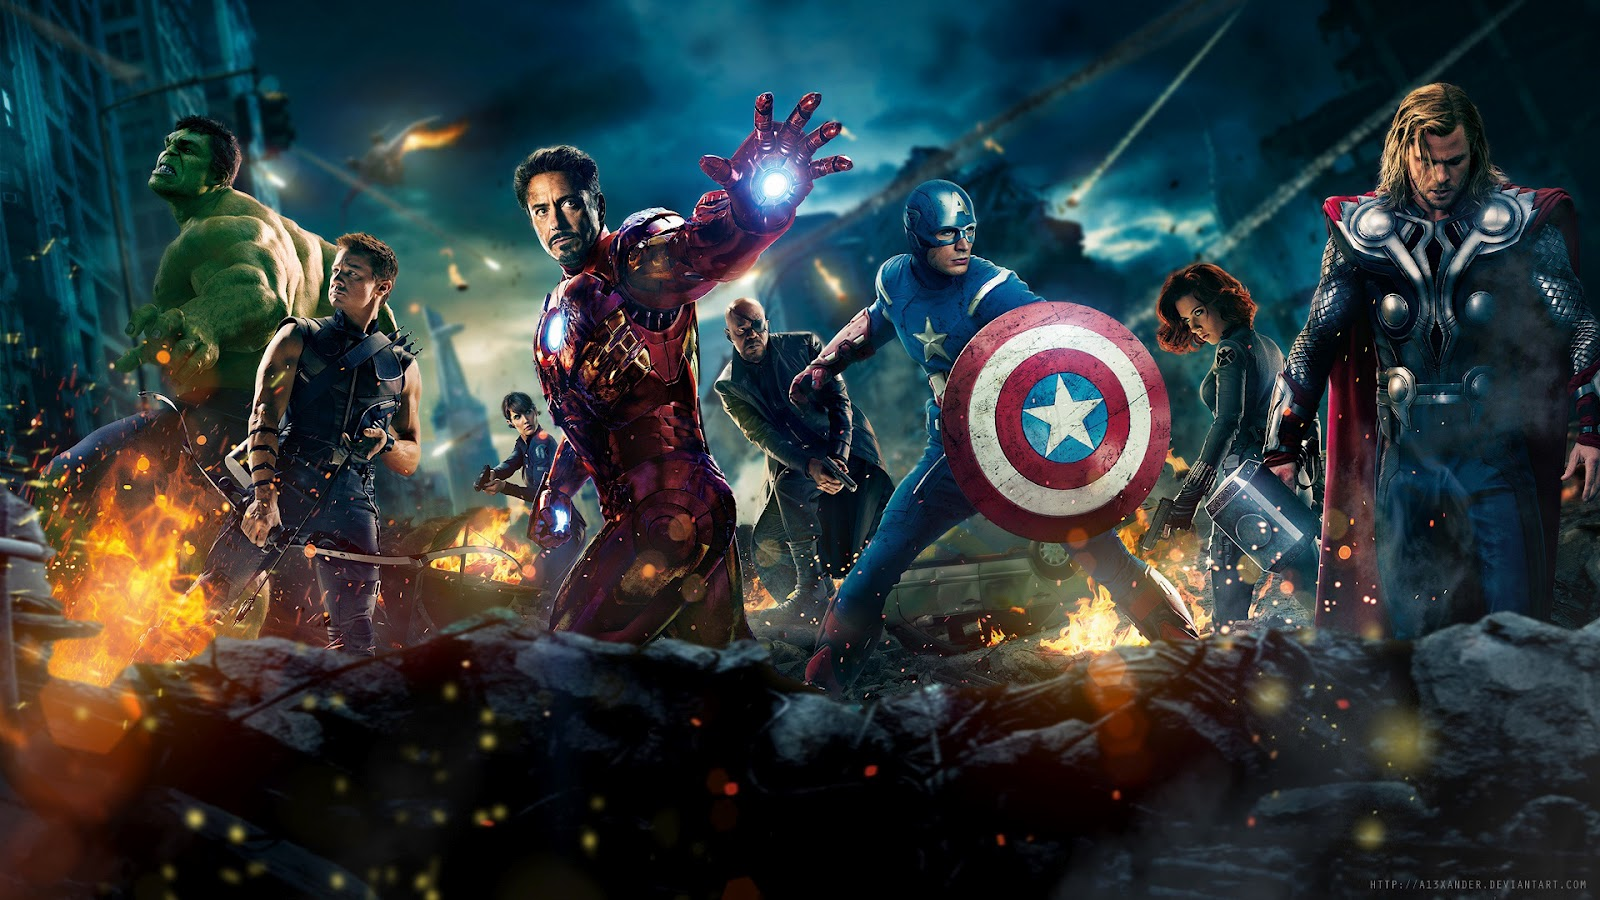 http://4.bp.blogspot.com/-9obnSFTtFnA/T_qfZd_ORyI/AAAAAAAAAXM/NqxUhQQMbGo/s1600/avengers--full-hd-wallpaper-x-movie-p.jpg